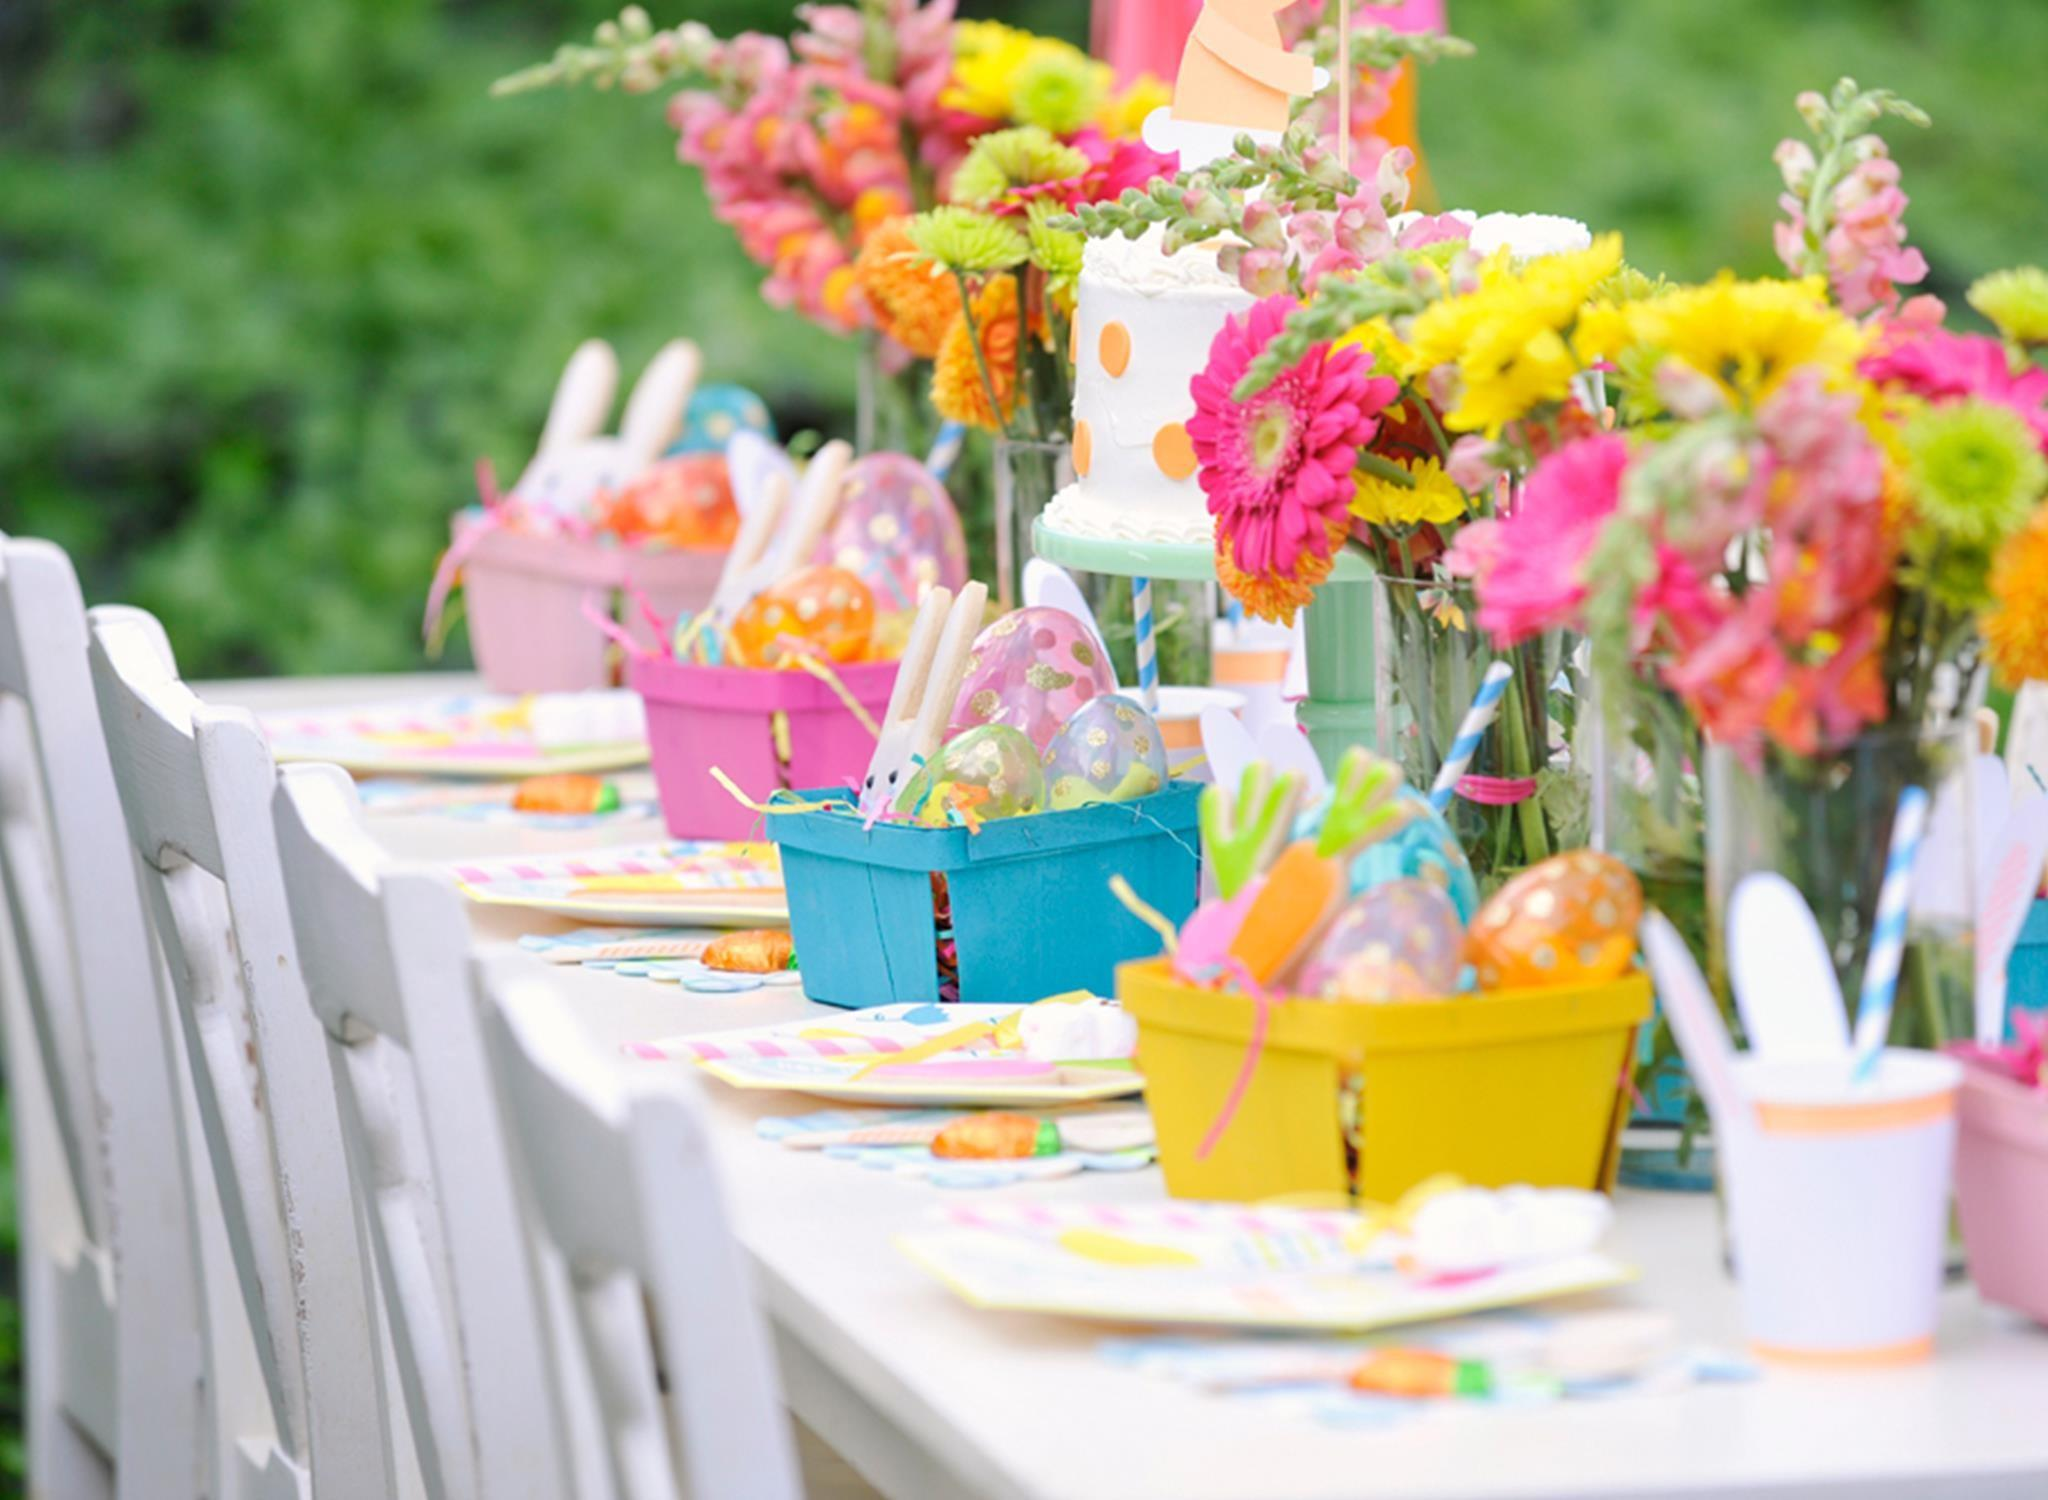 Ideas Decorating Your Affordable Easter Centerpiece